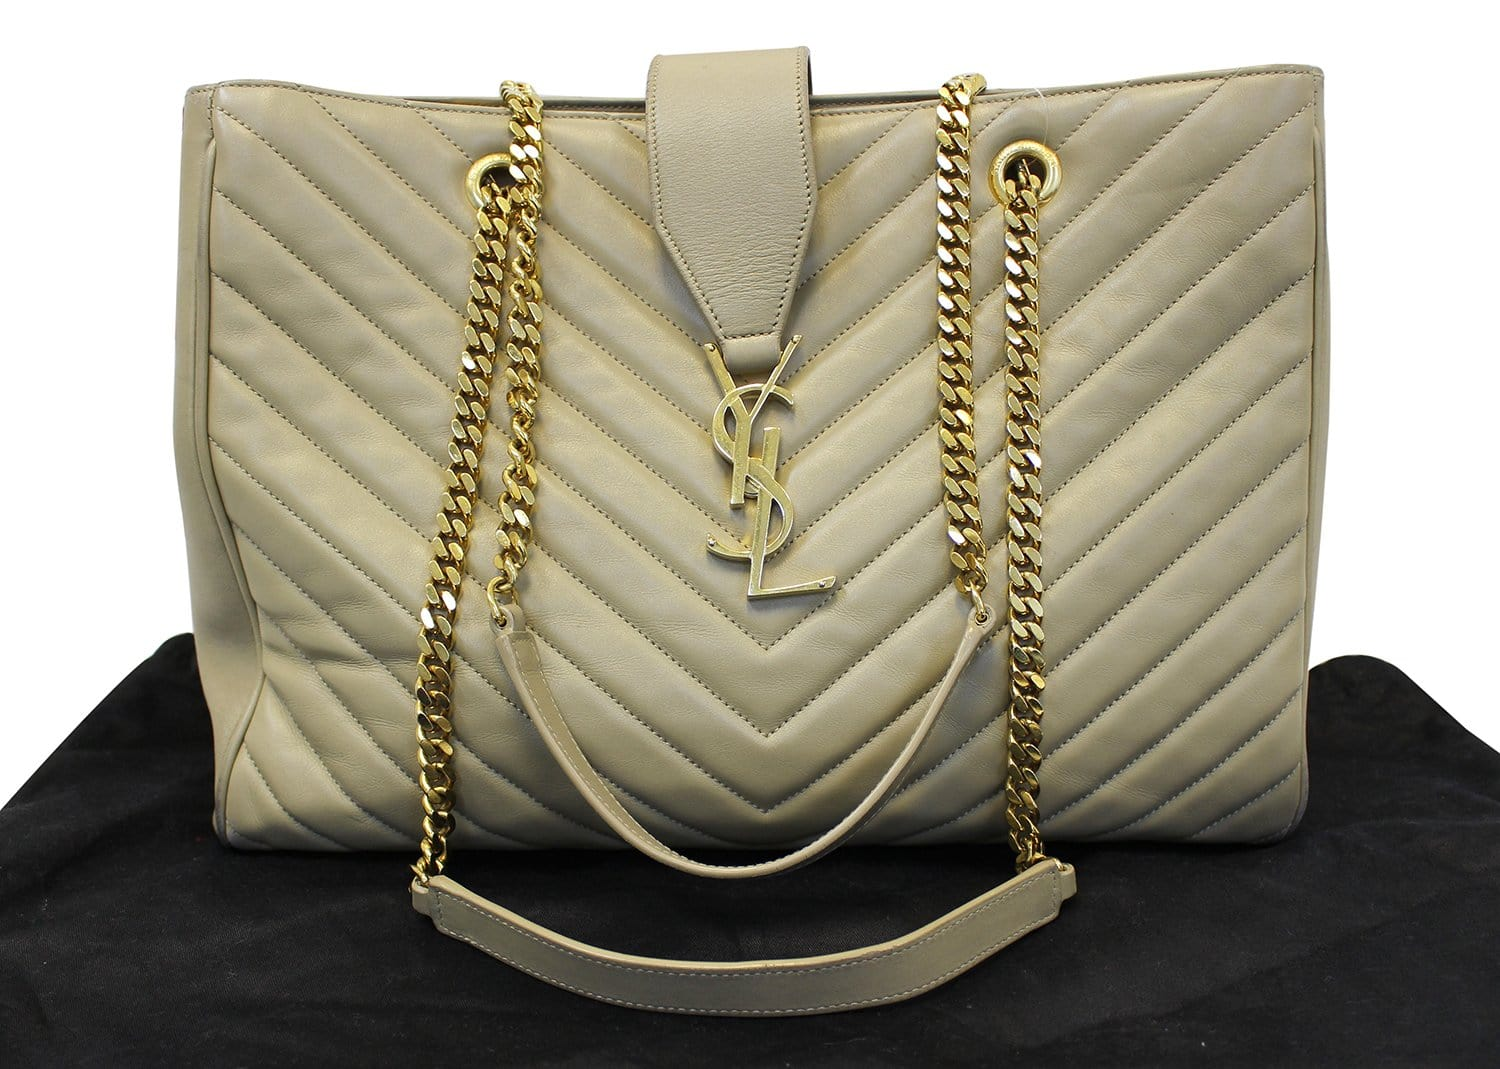 b2422b0a7f207 YVES SAINT LAURENT Matelasse Chevron Monogram Shopper Beige Bag - Fina